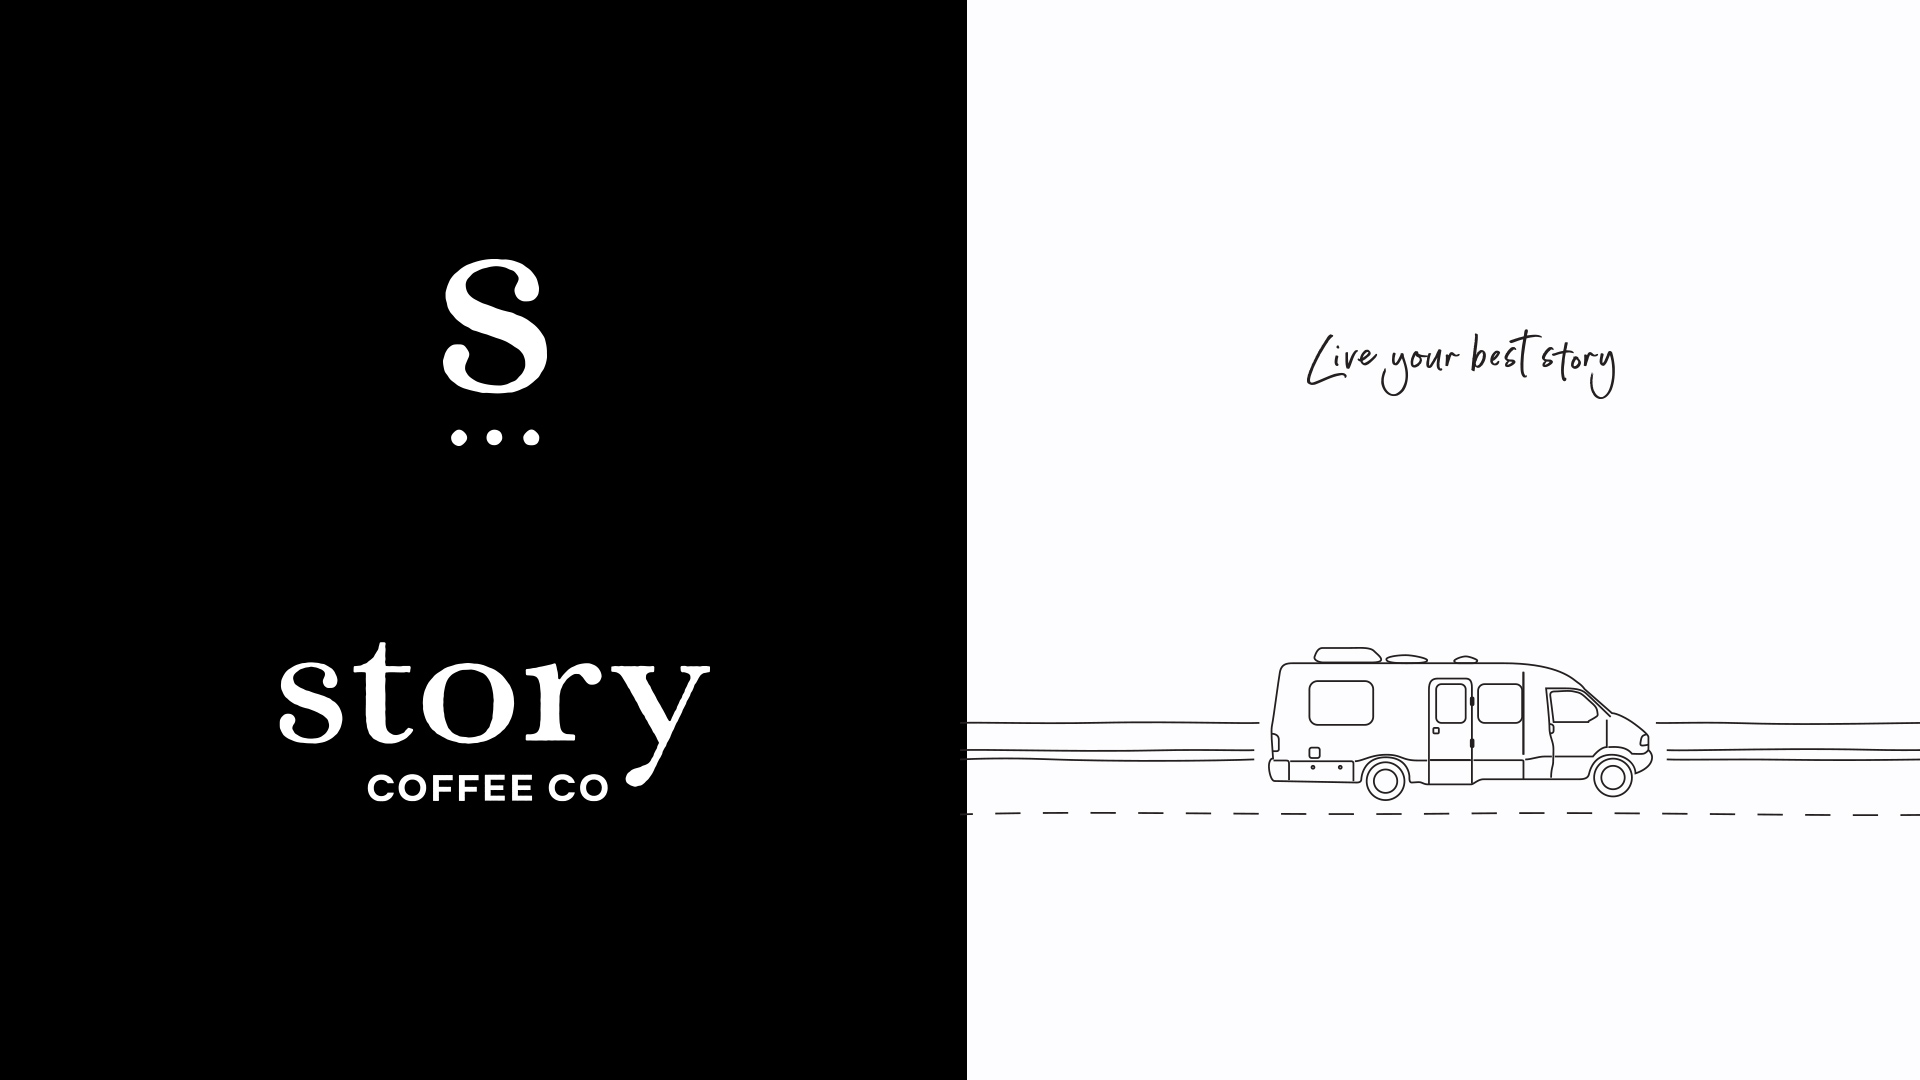 story-coffee-co-casestudy-5